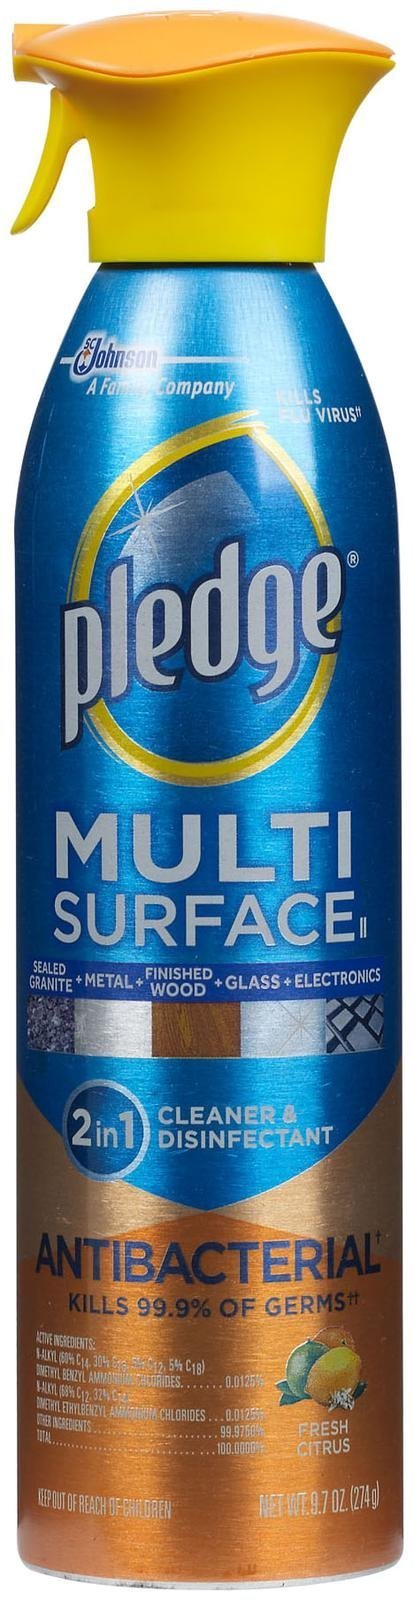 Pledge Multi Surface Antibacterial Everyday Cleaner - 9.7 oz - Fresh Citrus